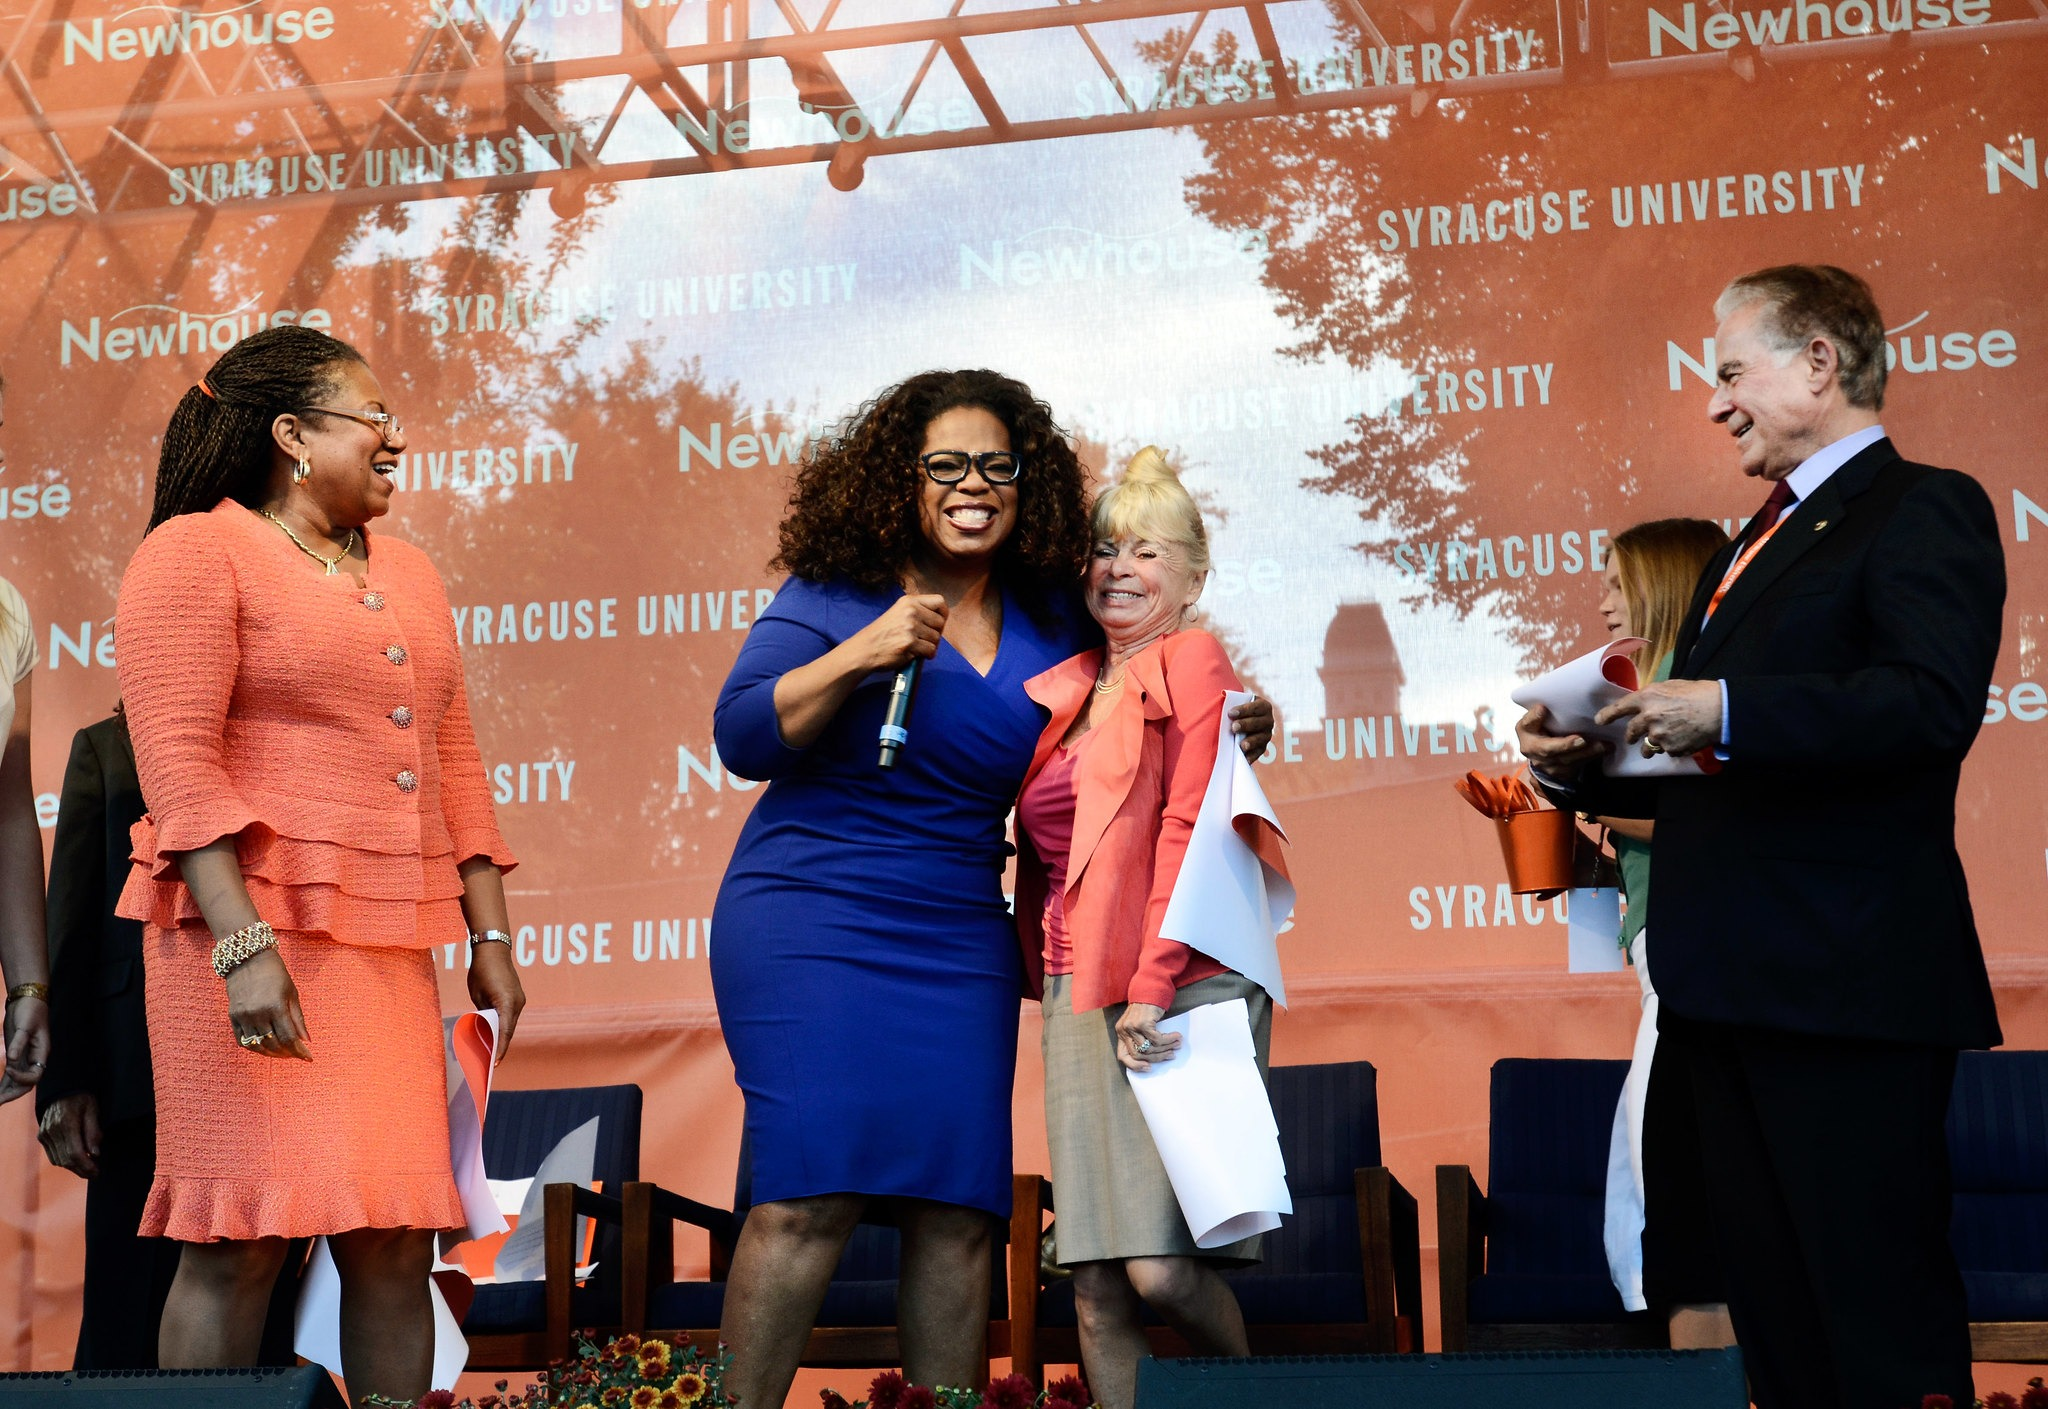 Five Things Oprah Winfrey Has Done for Women